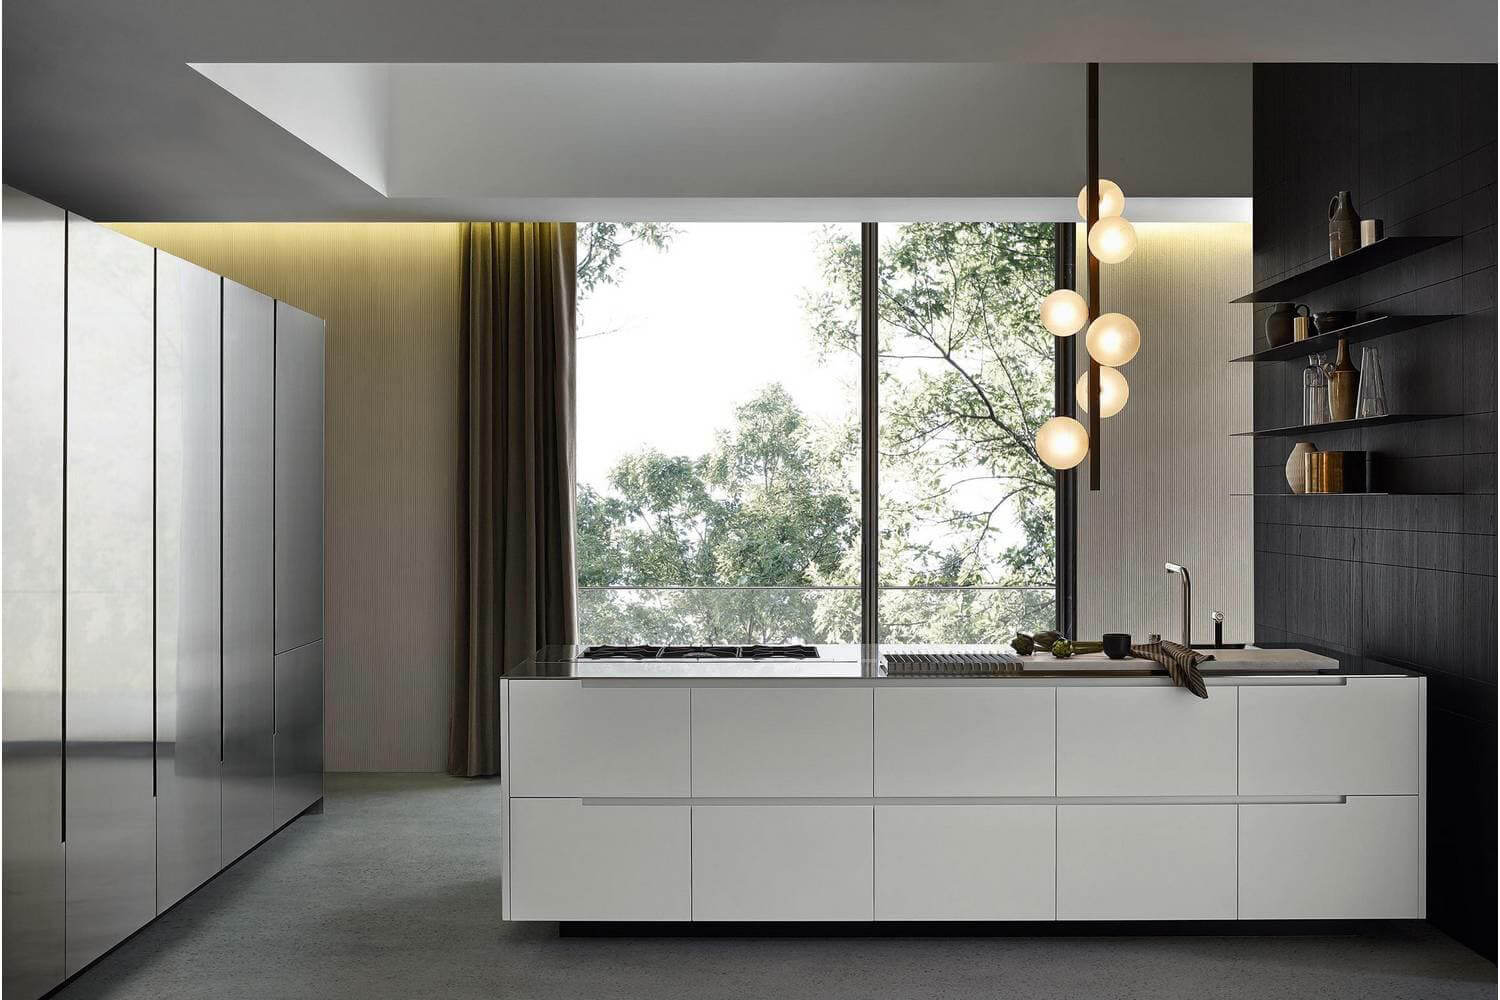 prev - Poliform Kitchen